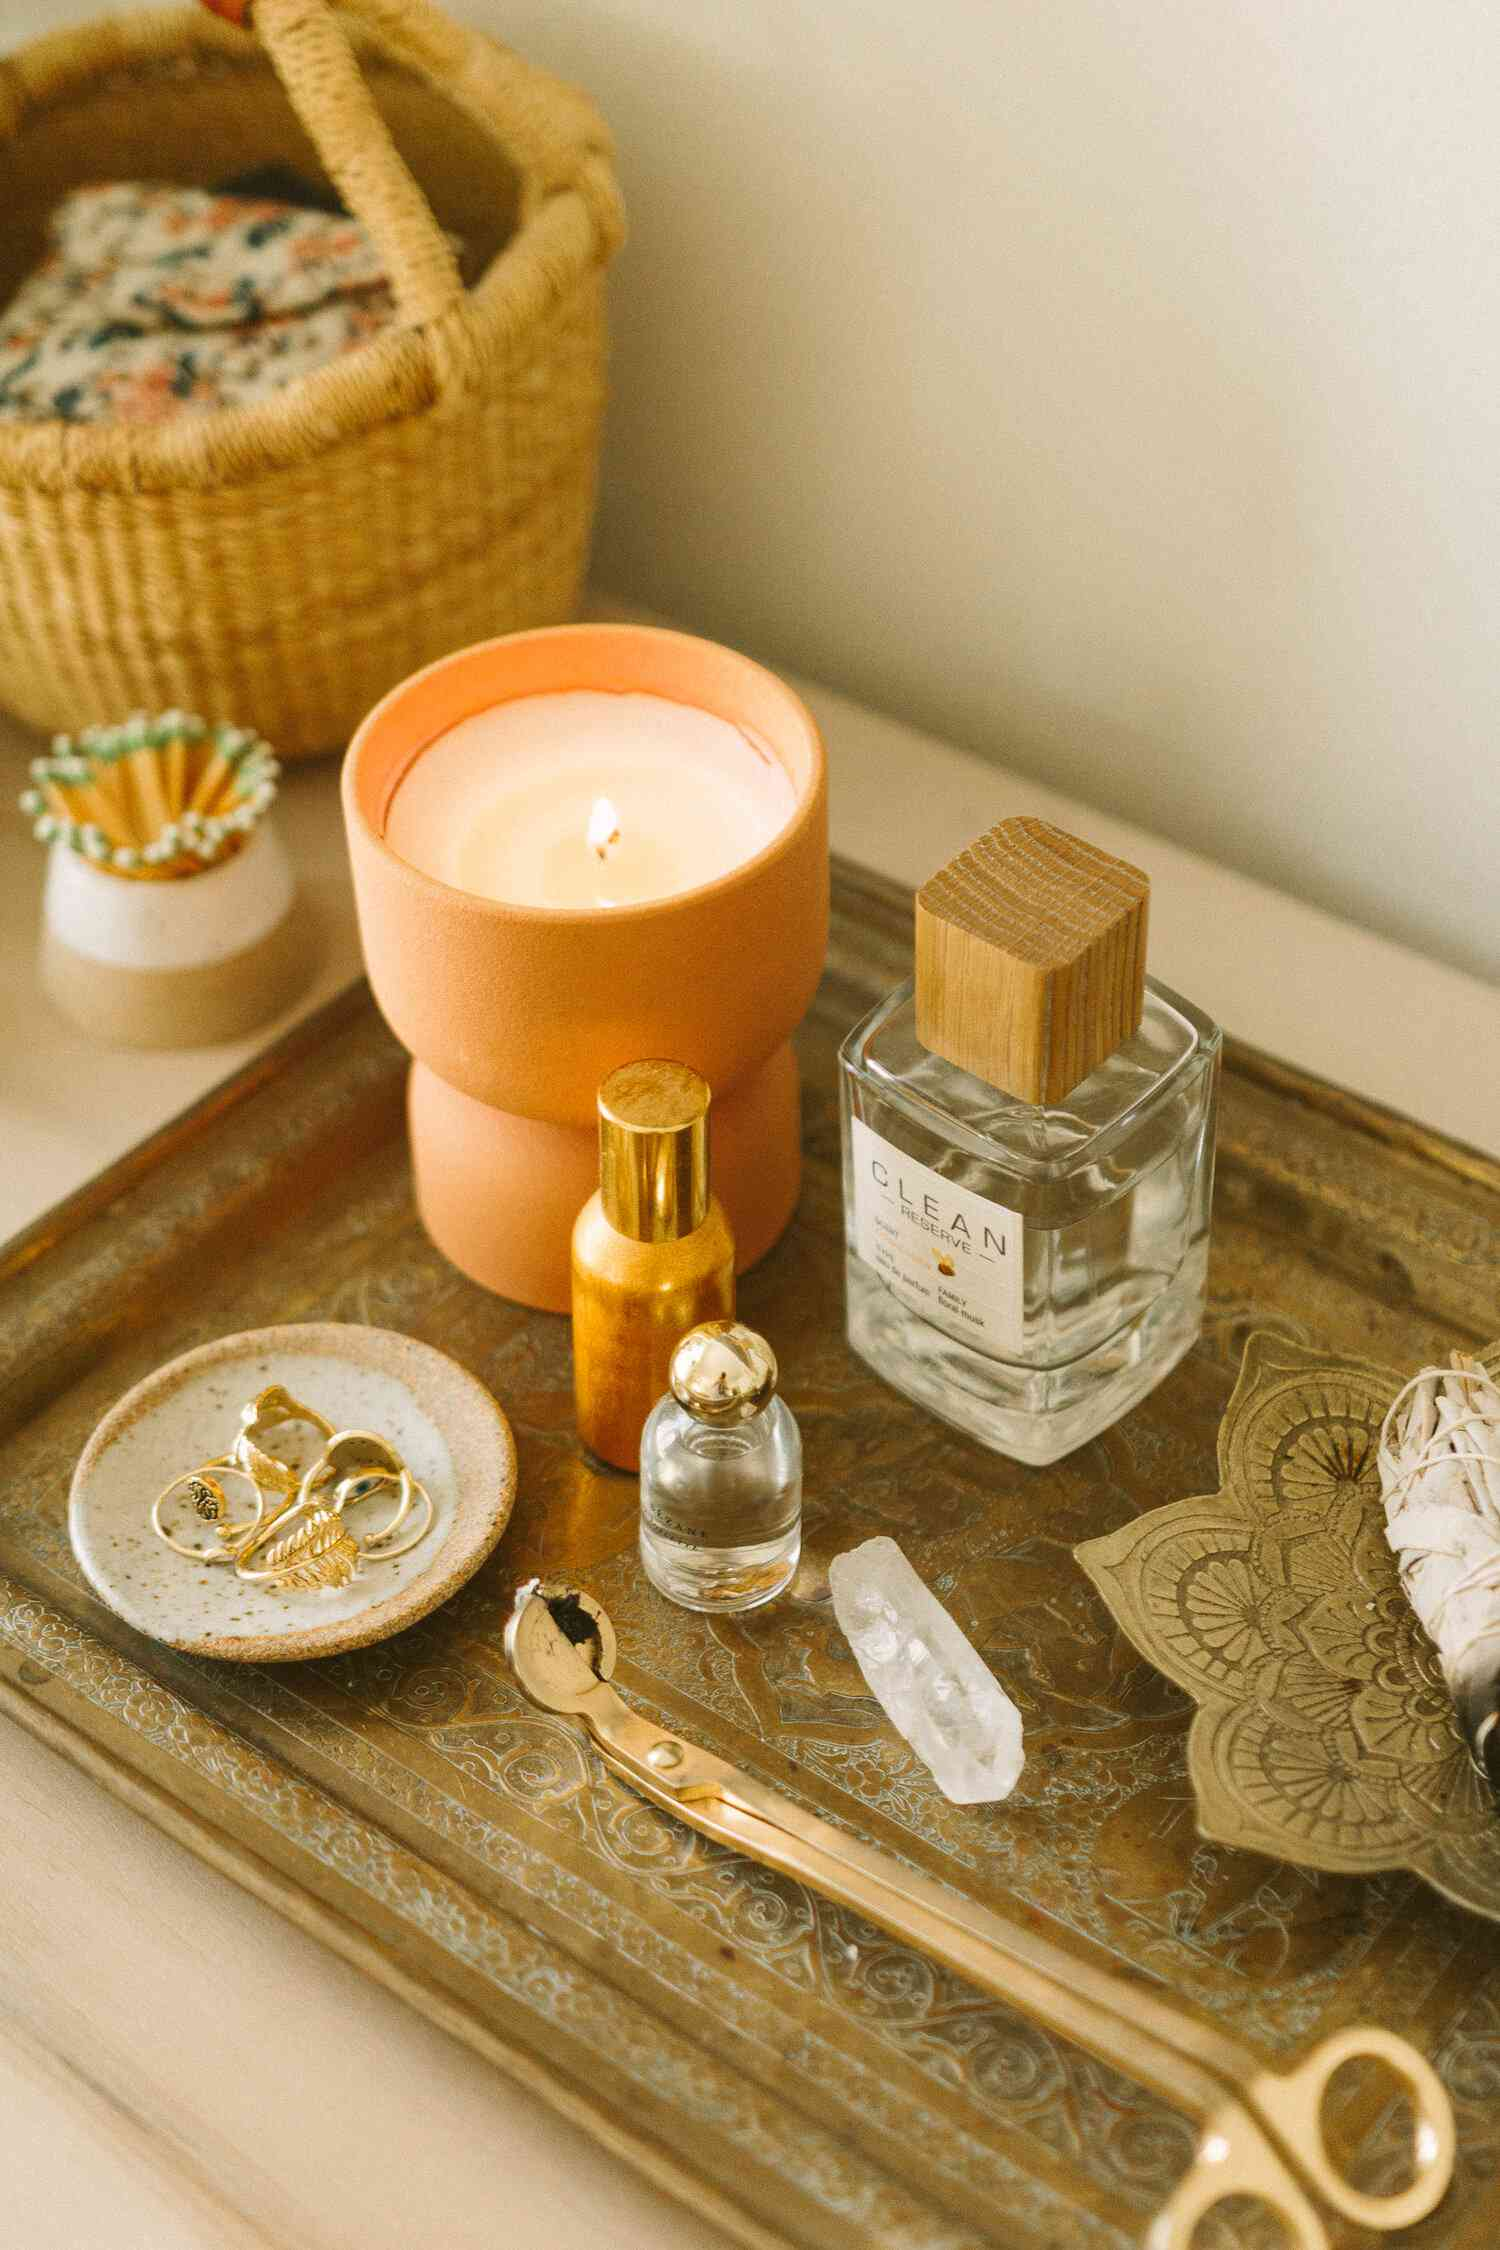 Decorative tray holding a candle, perfume, and jewelry